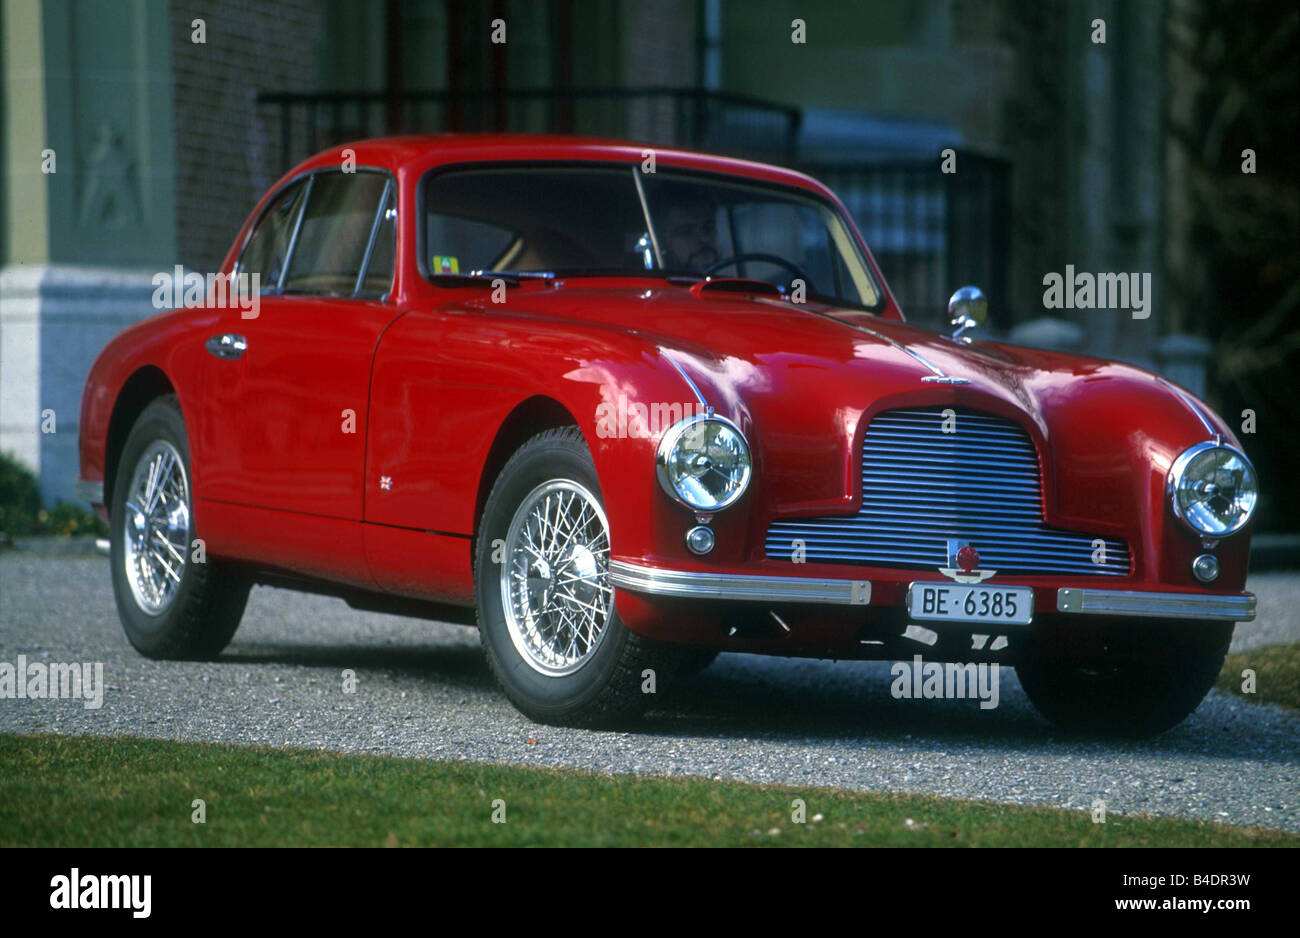 Car Aston Martin DB2 Vantage coupe model year 19511953